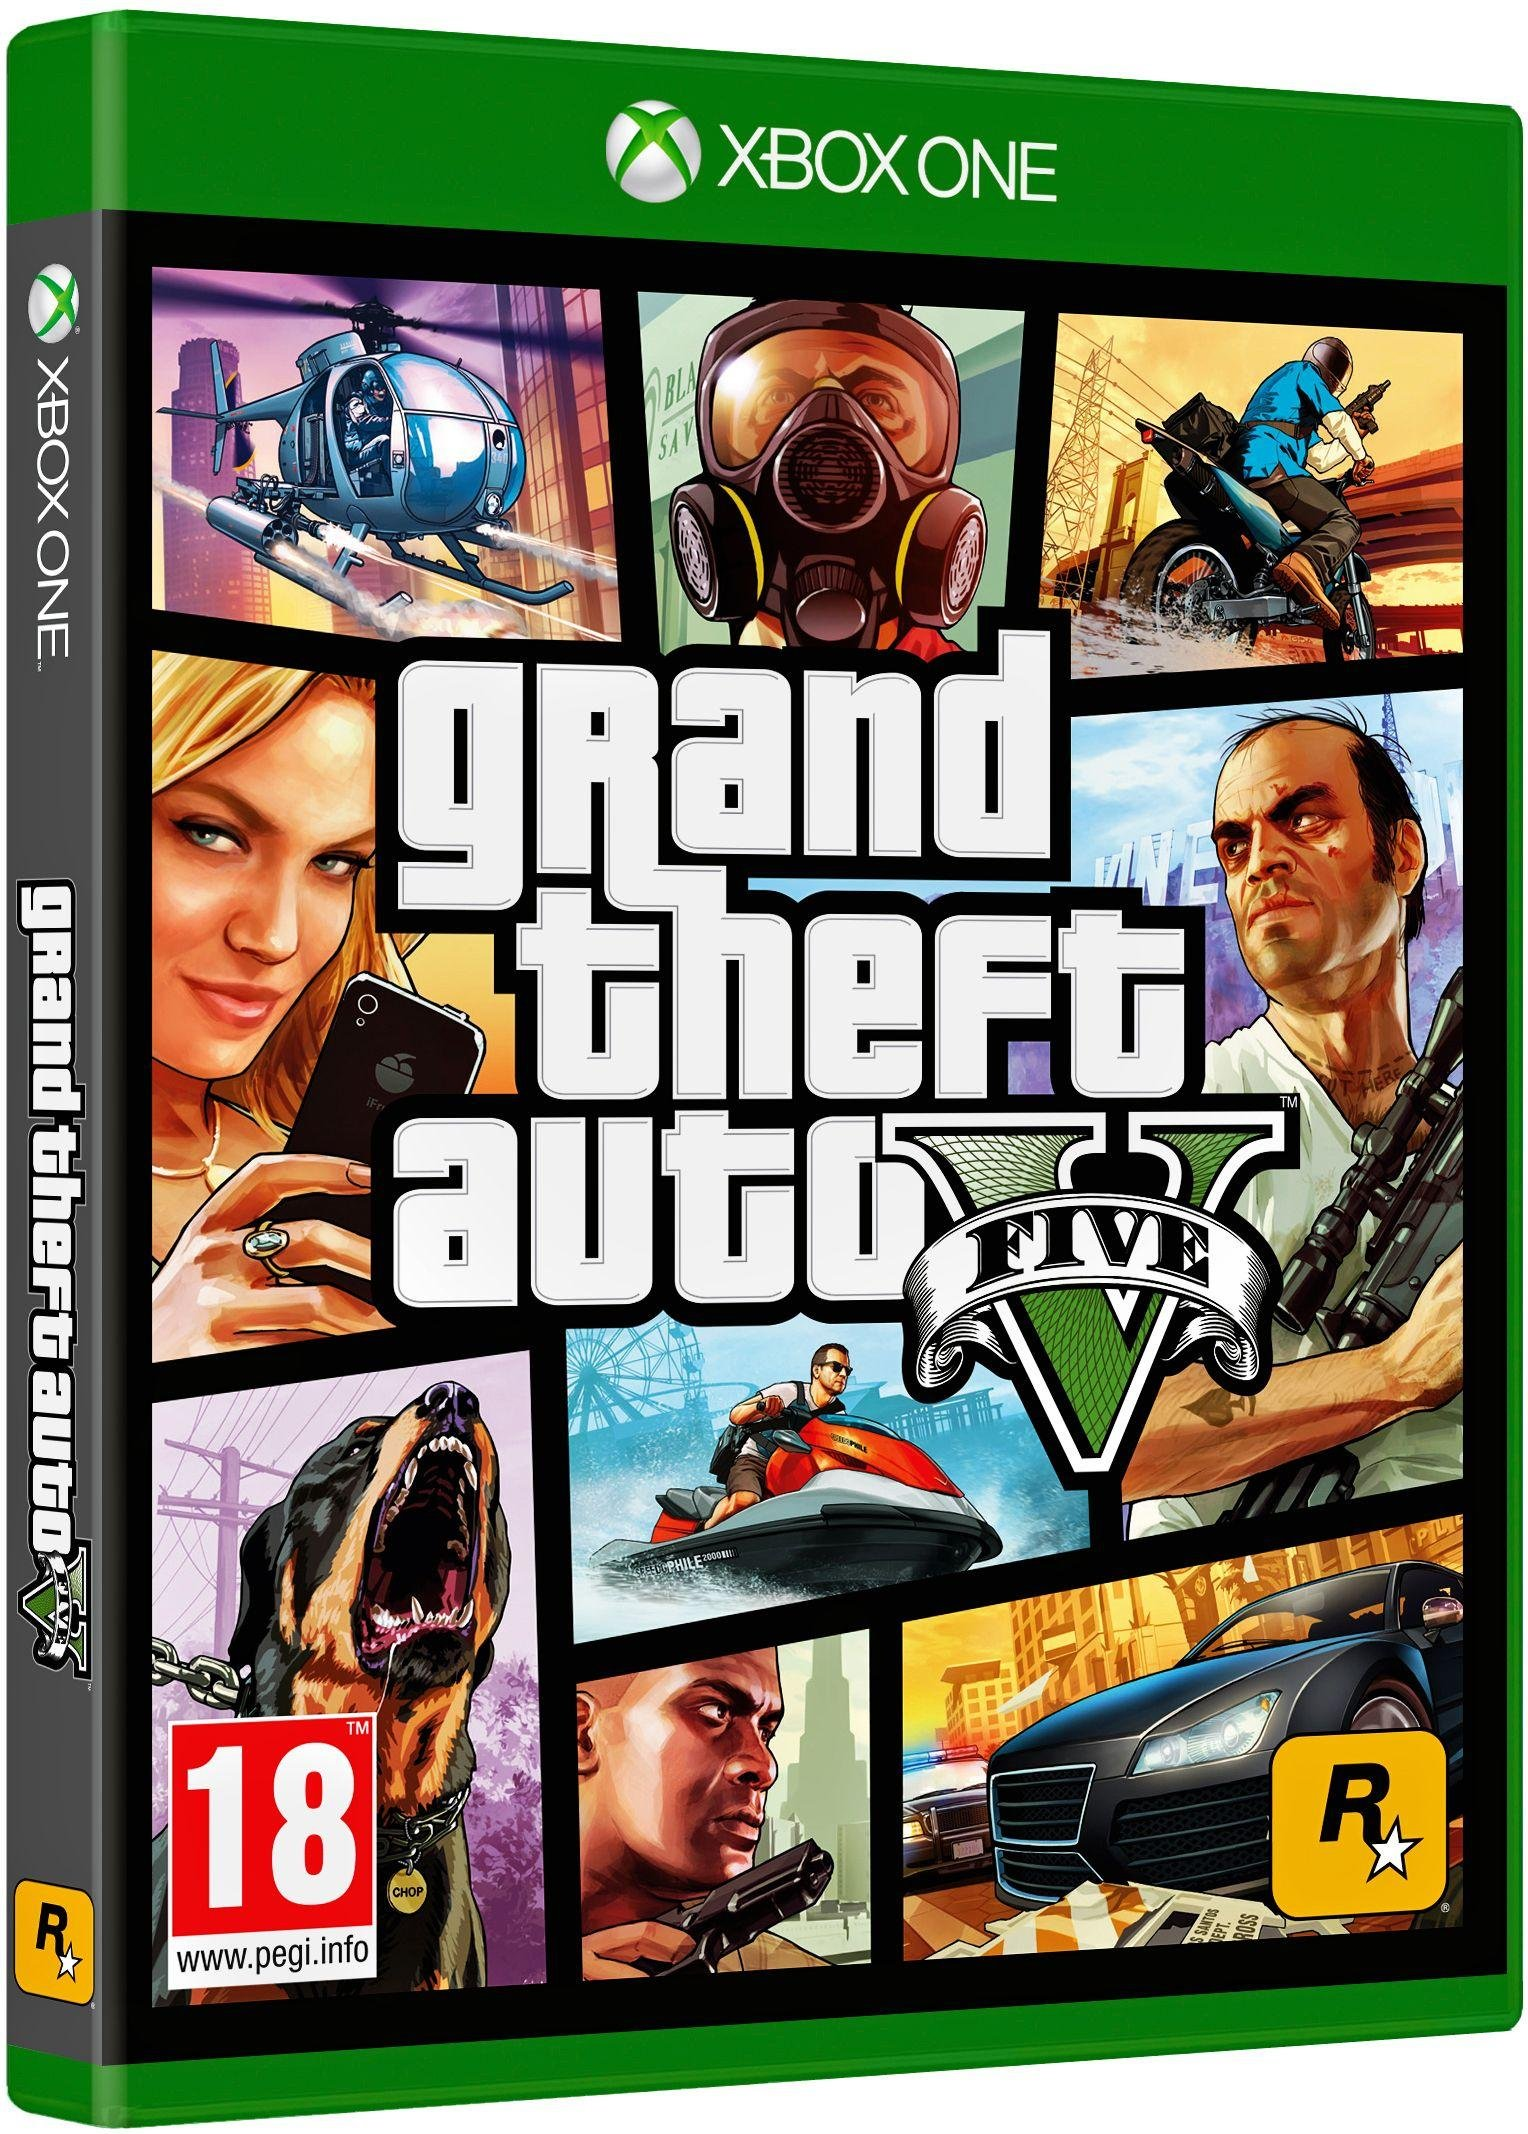 Click here for XBOX ONE  Grand Theft Auto V prices